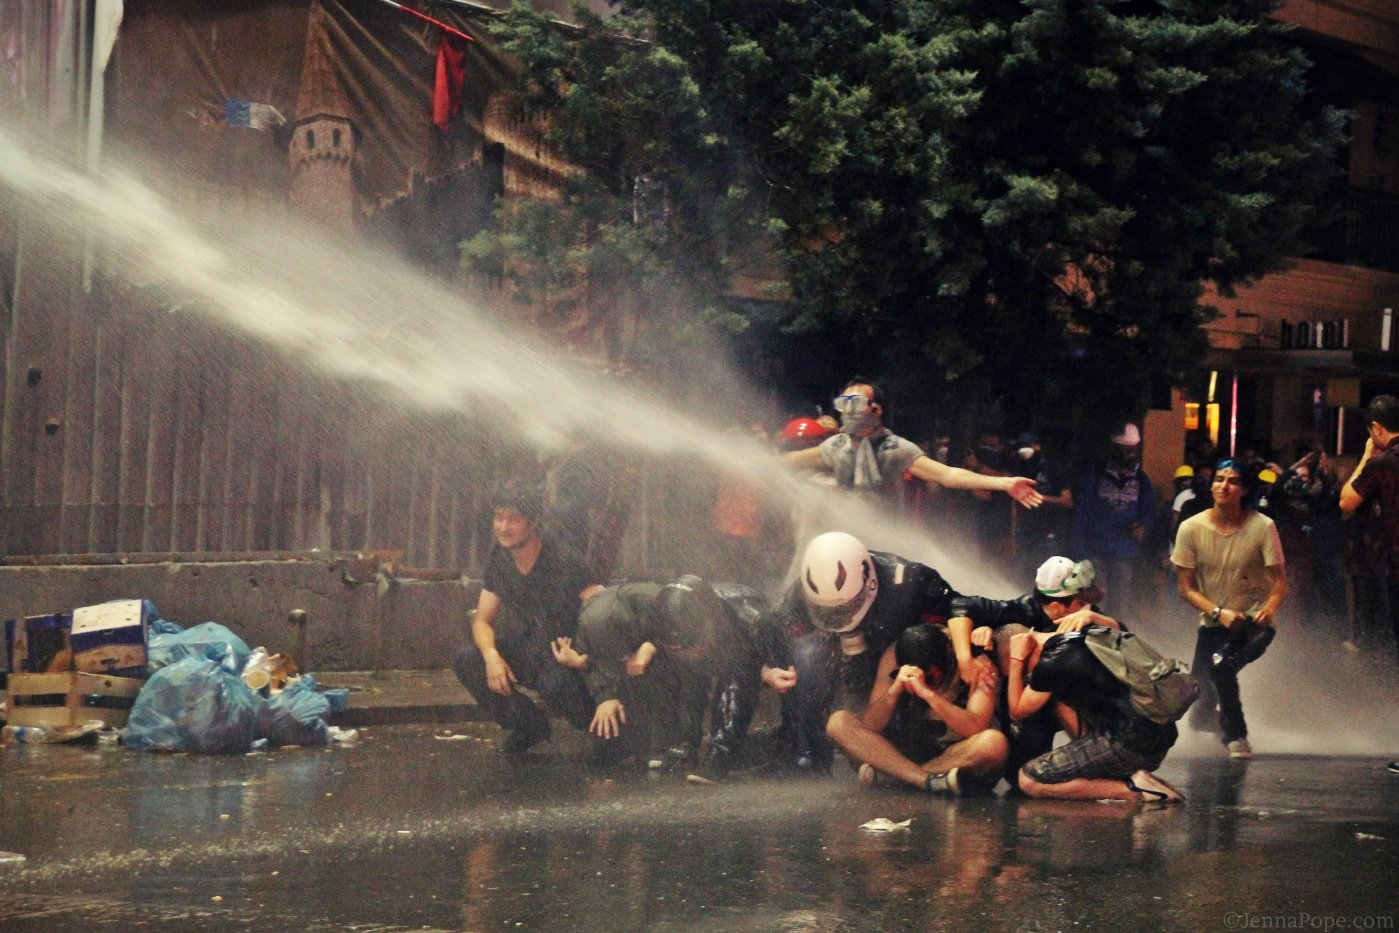 Protestors being sprayed with a water cannon.